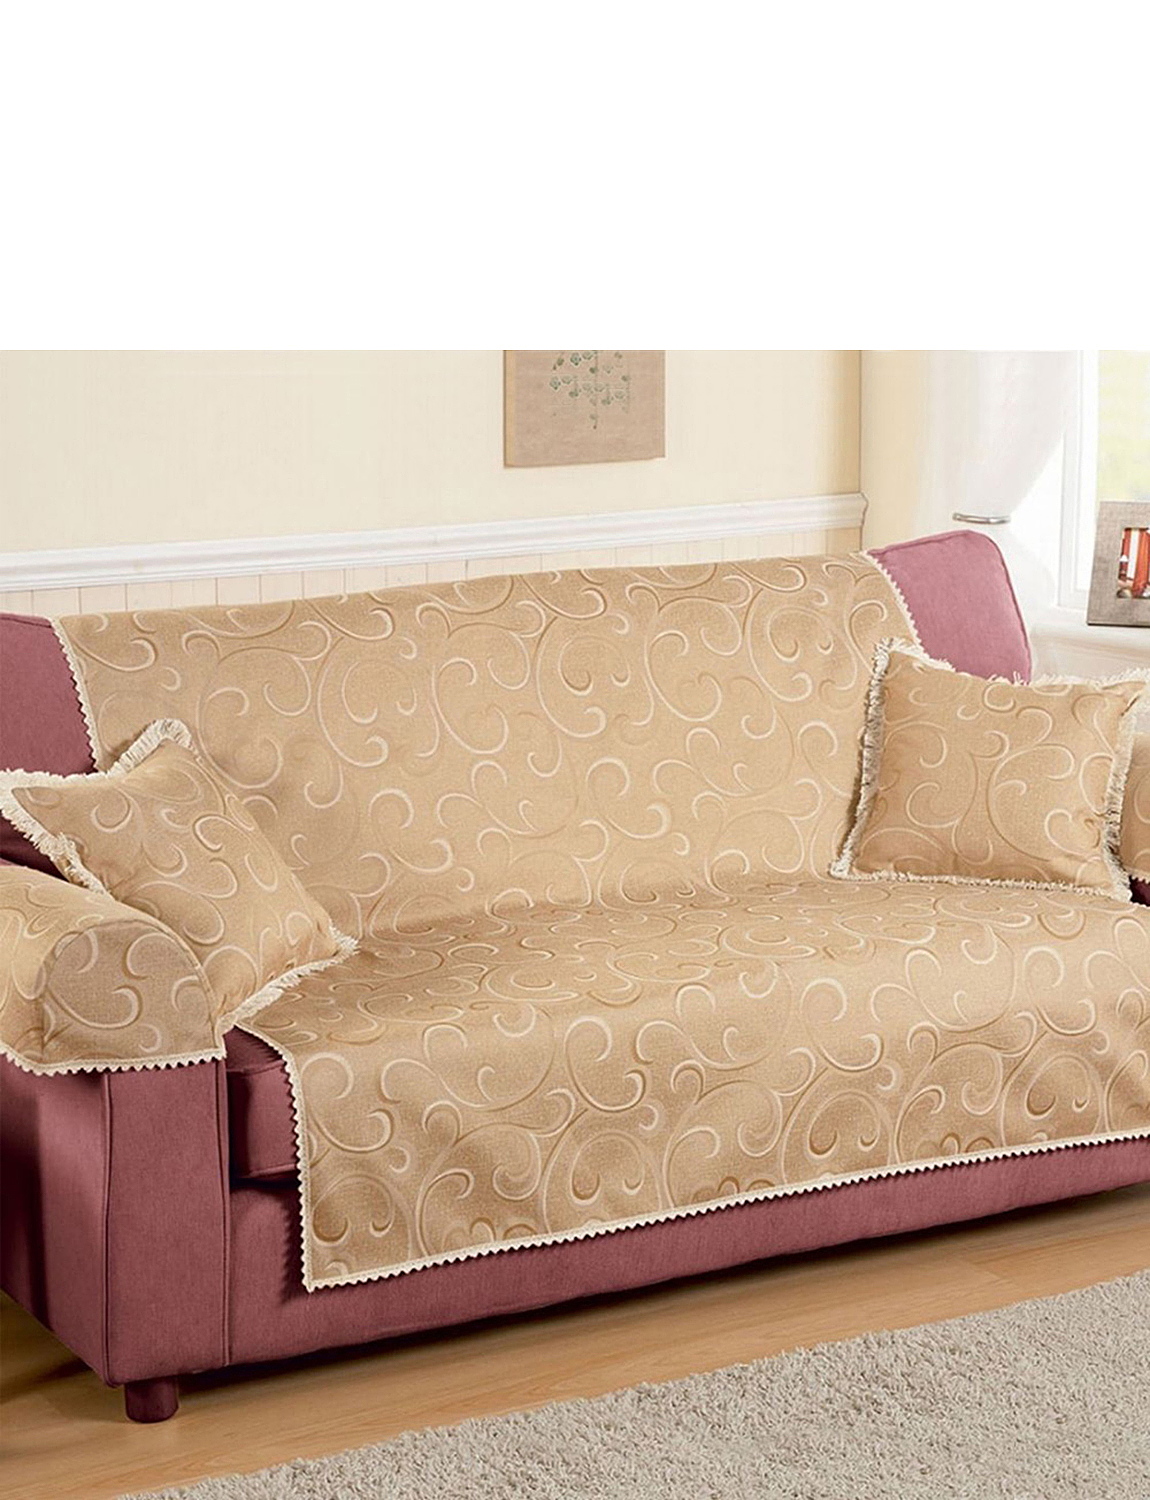 Scroll Furniture Protectors Home Living Room Chums